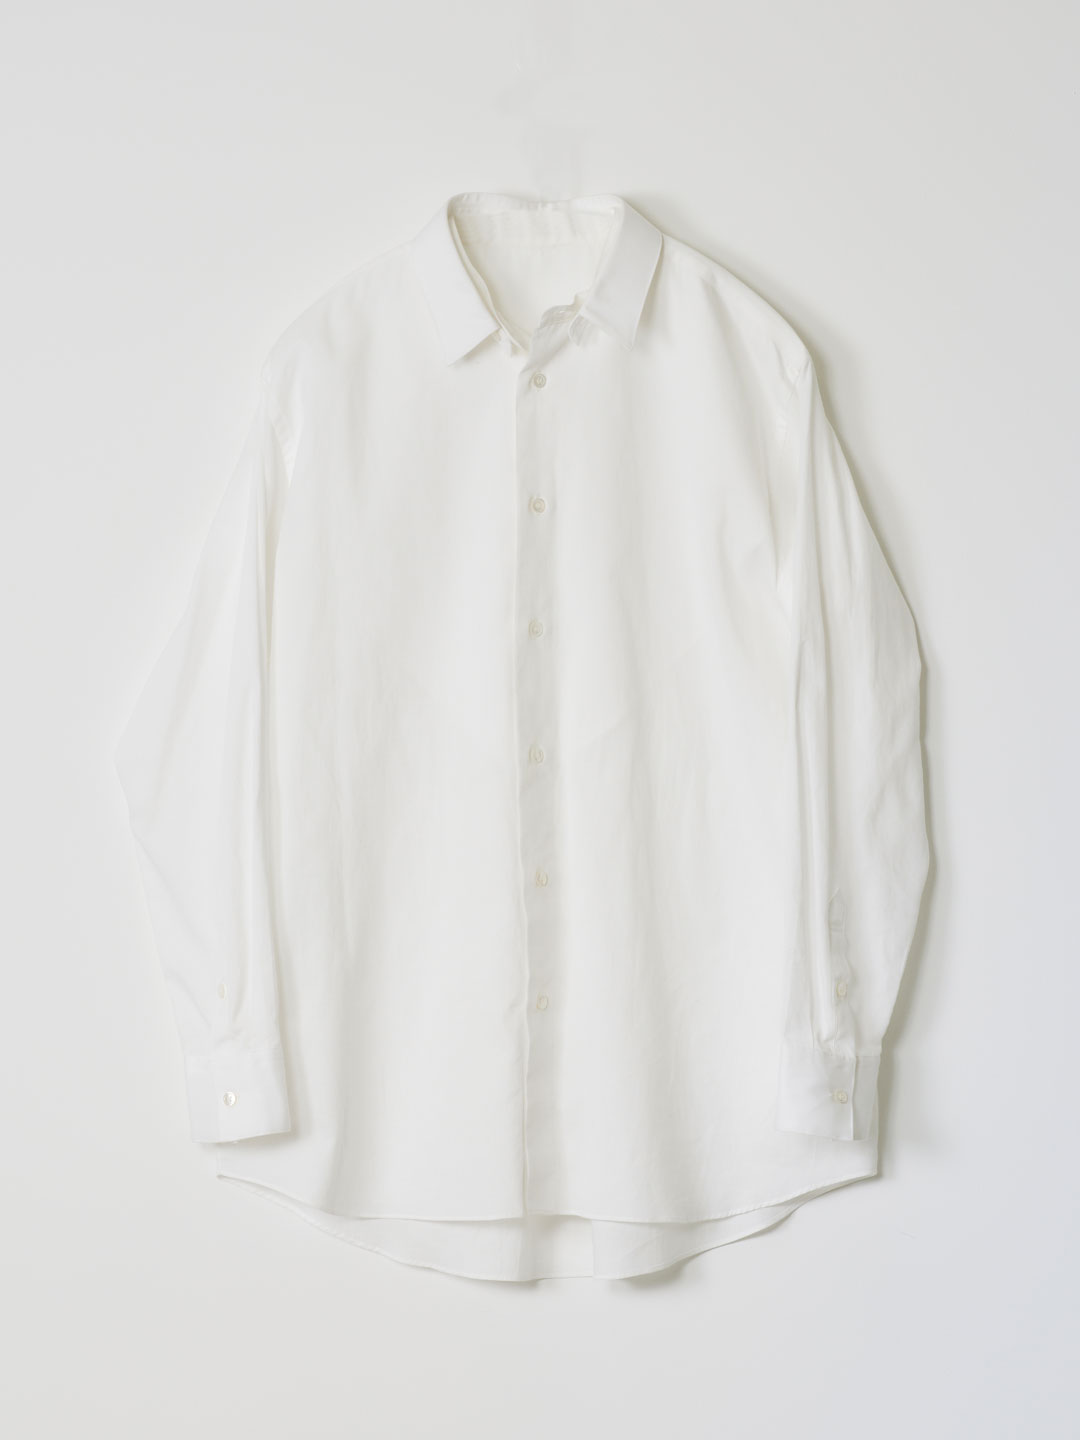 No 0227  Cotton Pique Dress Shirt - White